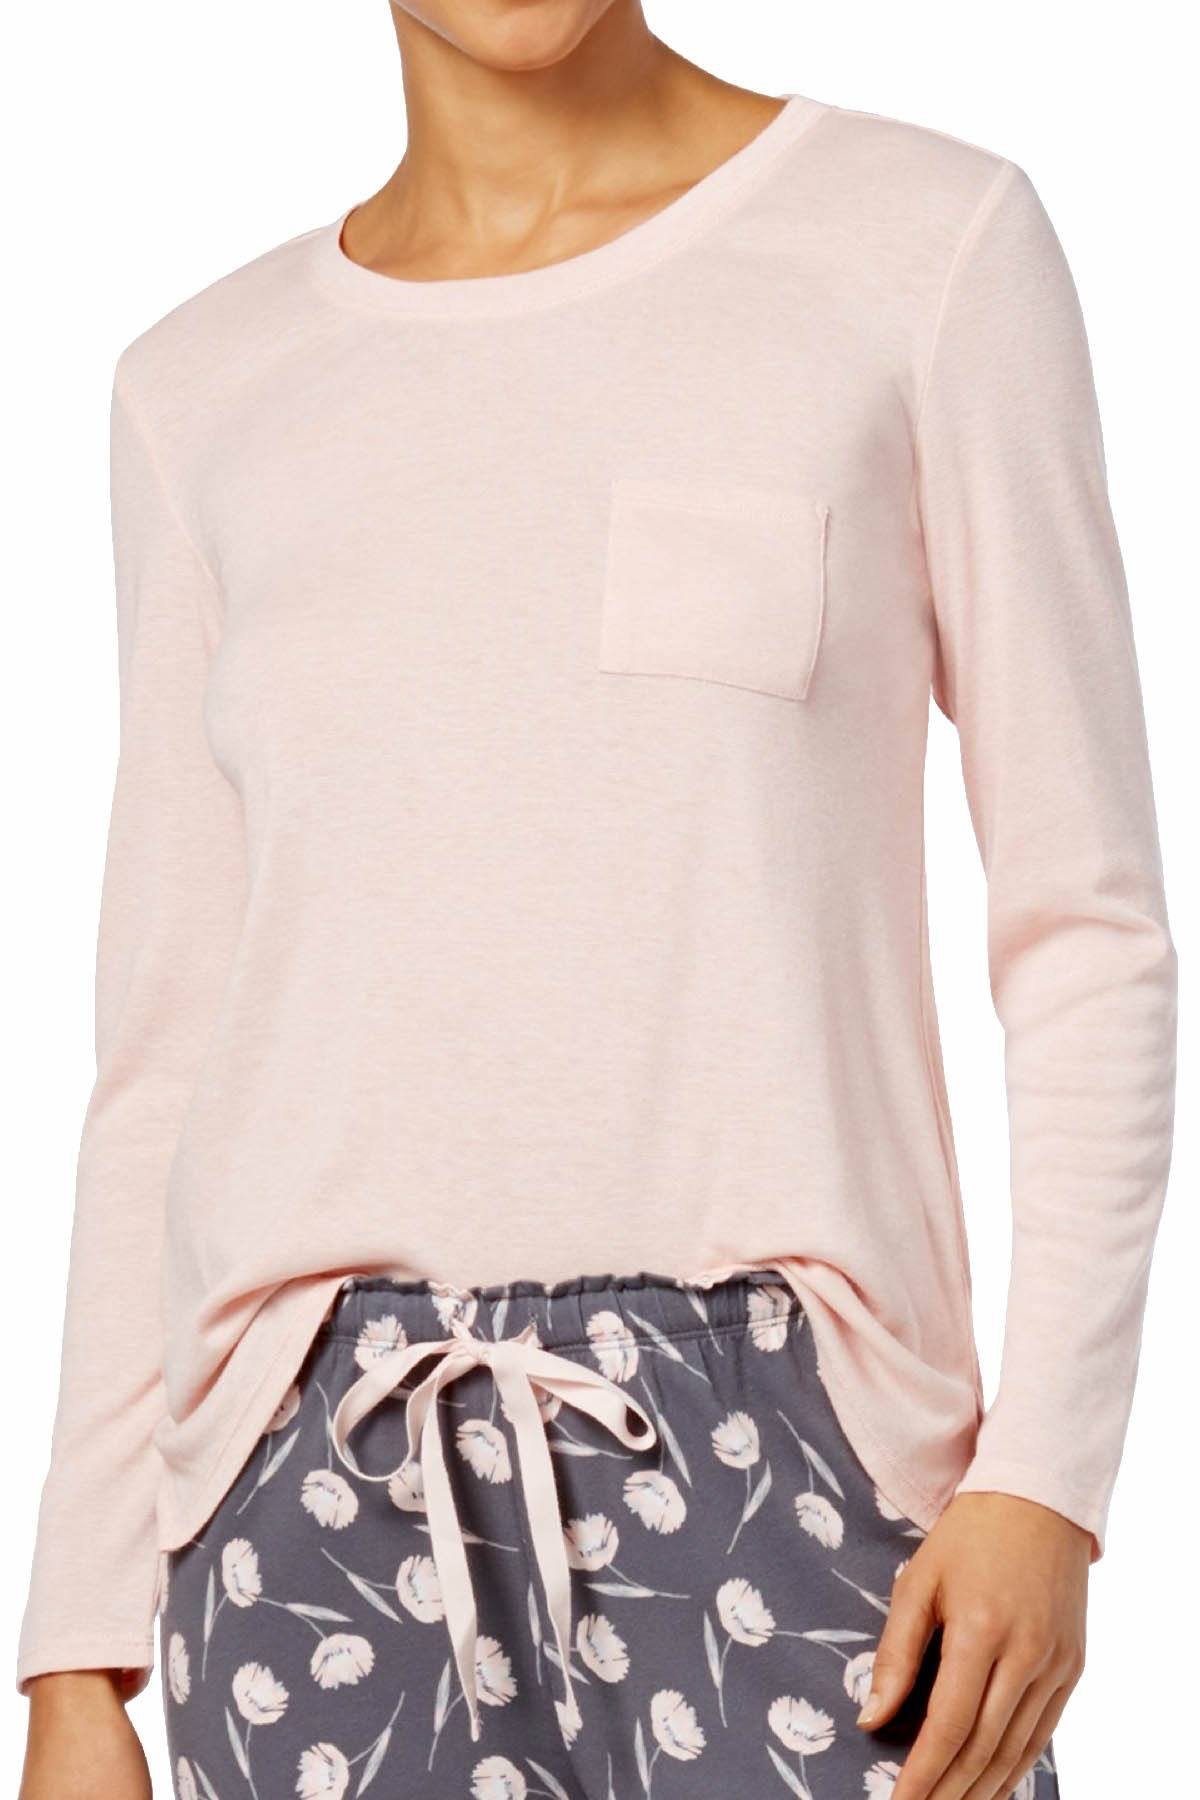 Alfani Long Sleeve Scoop Neck Top in Soft Shell Pink